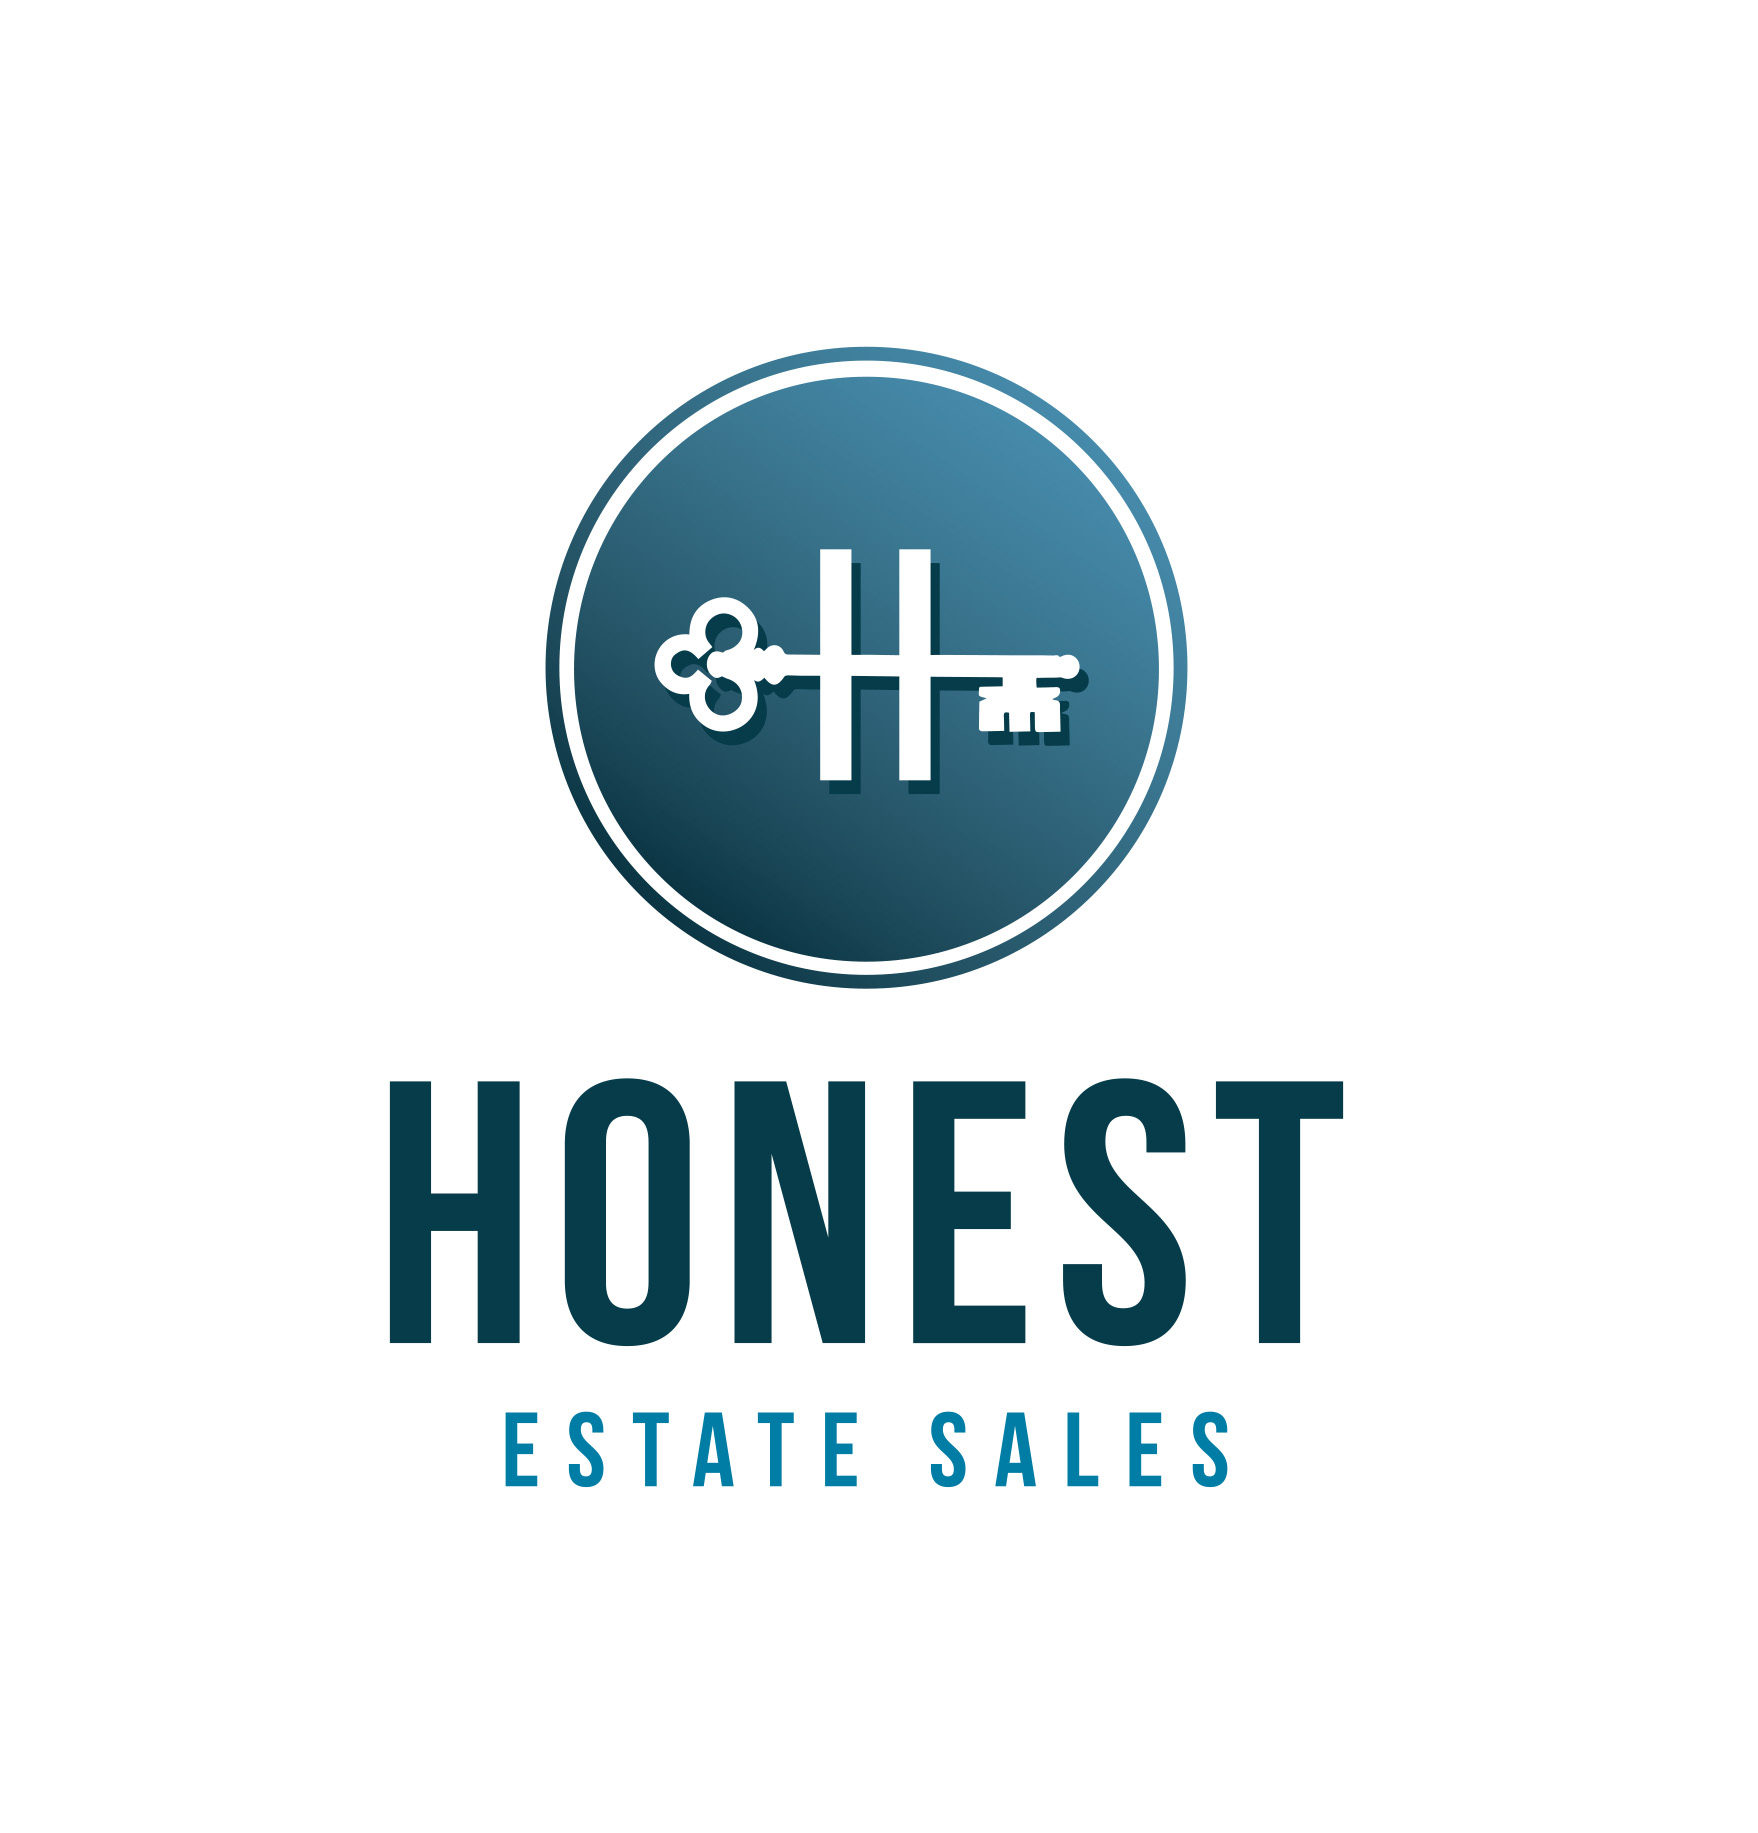 Honest-Estate-Sales-Logo